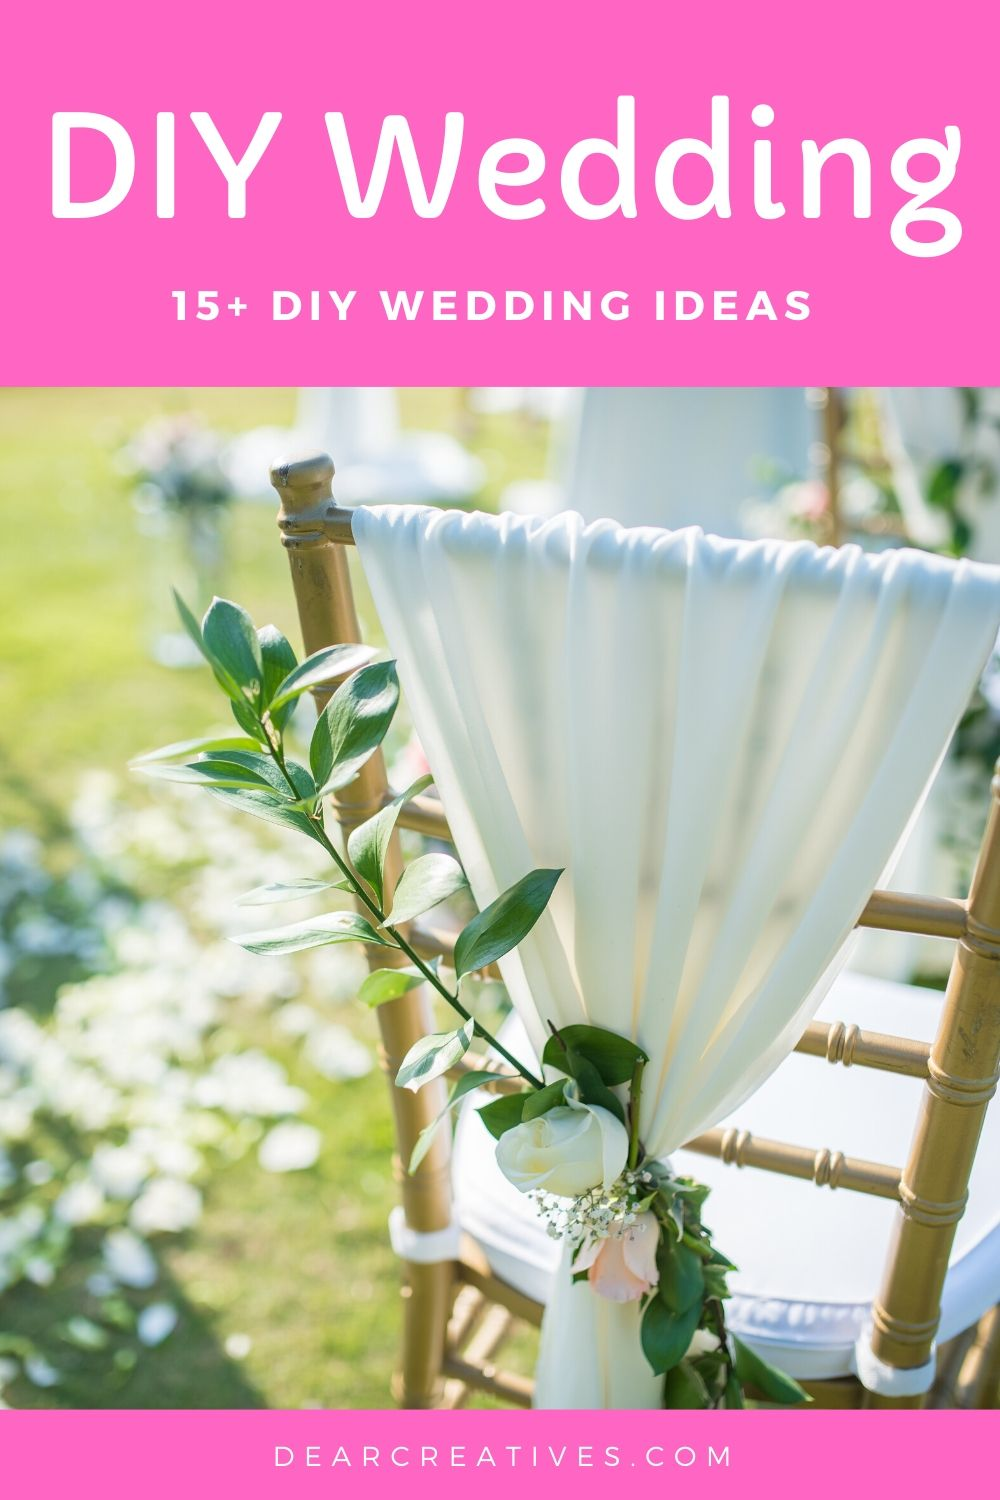 15+ DIY Wedding Ideas And Decorations